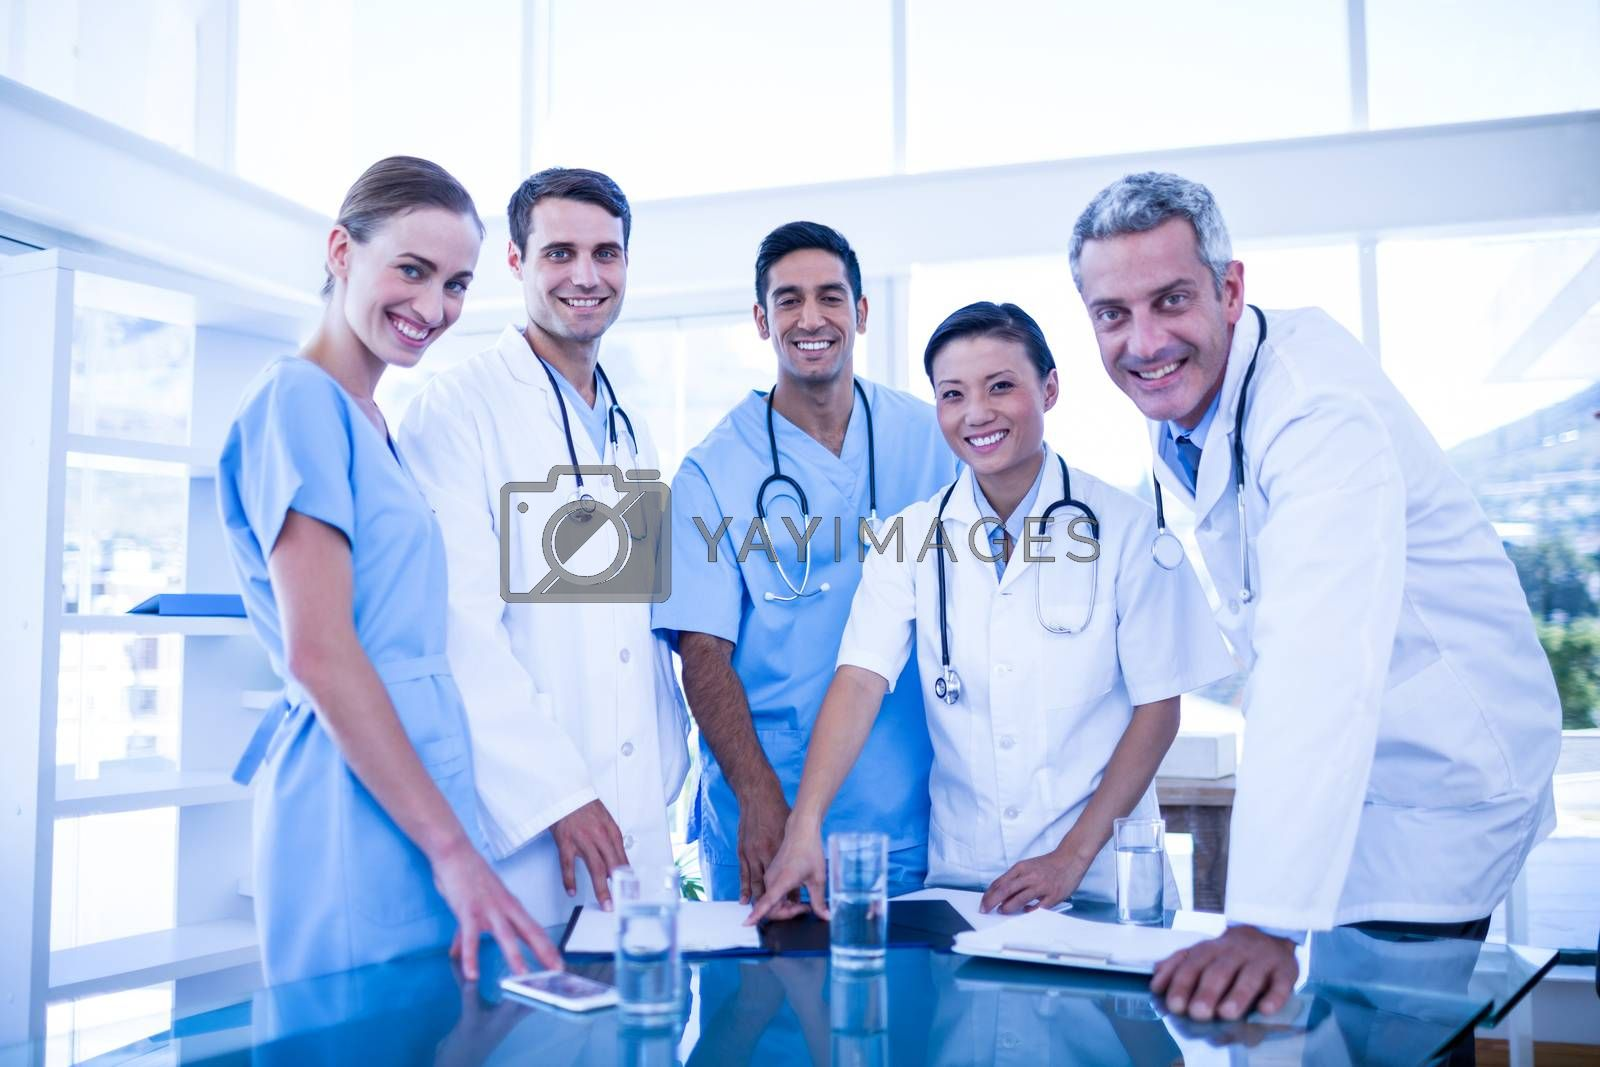 Royalty free image of Doctors and nurses smiling at camera by Wavebreakmedia